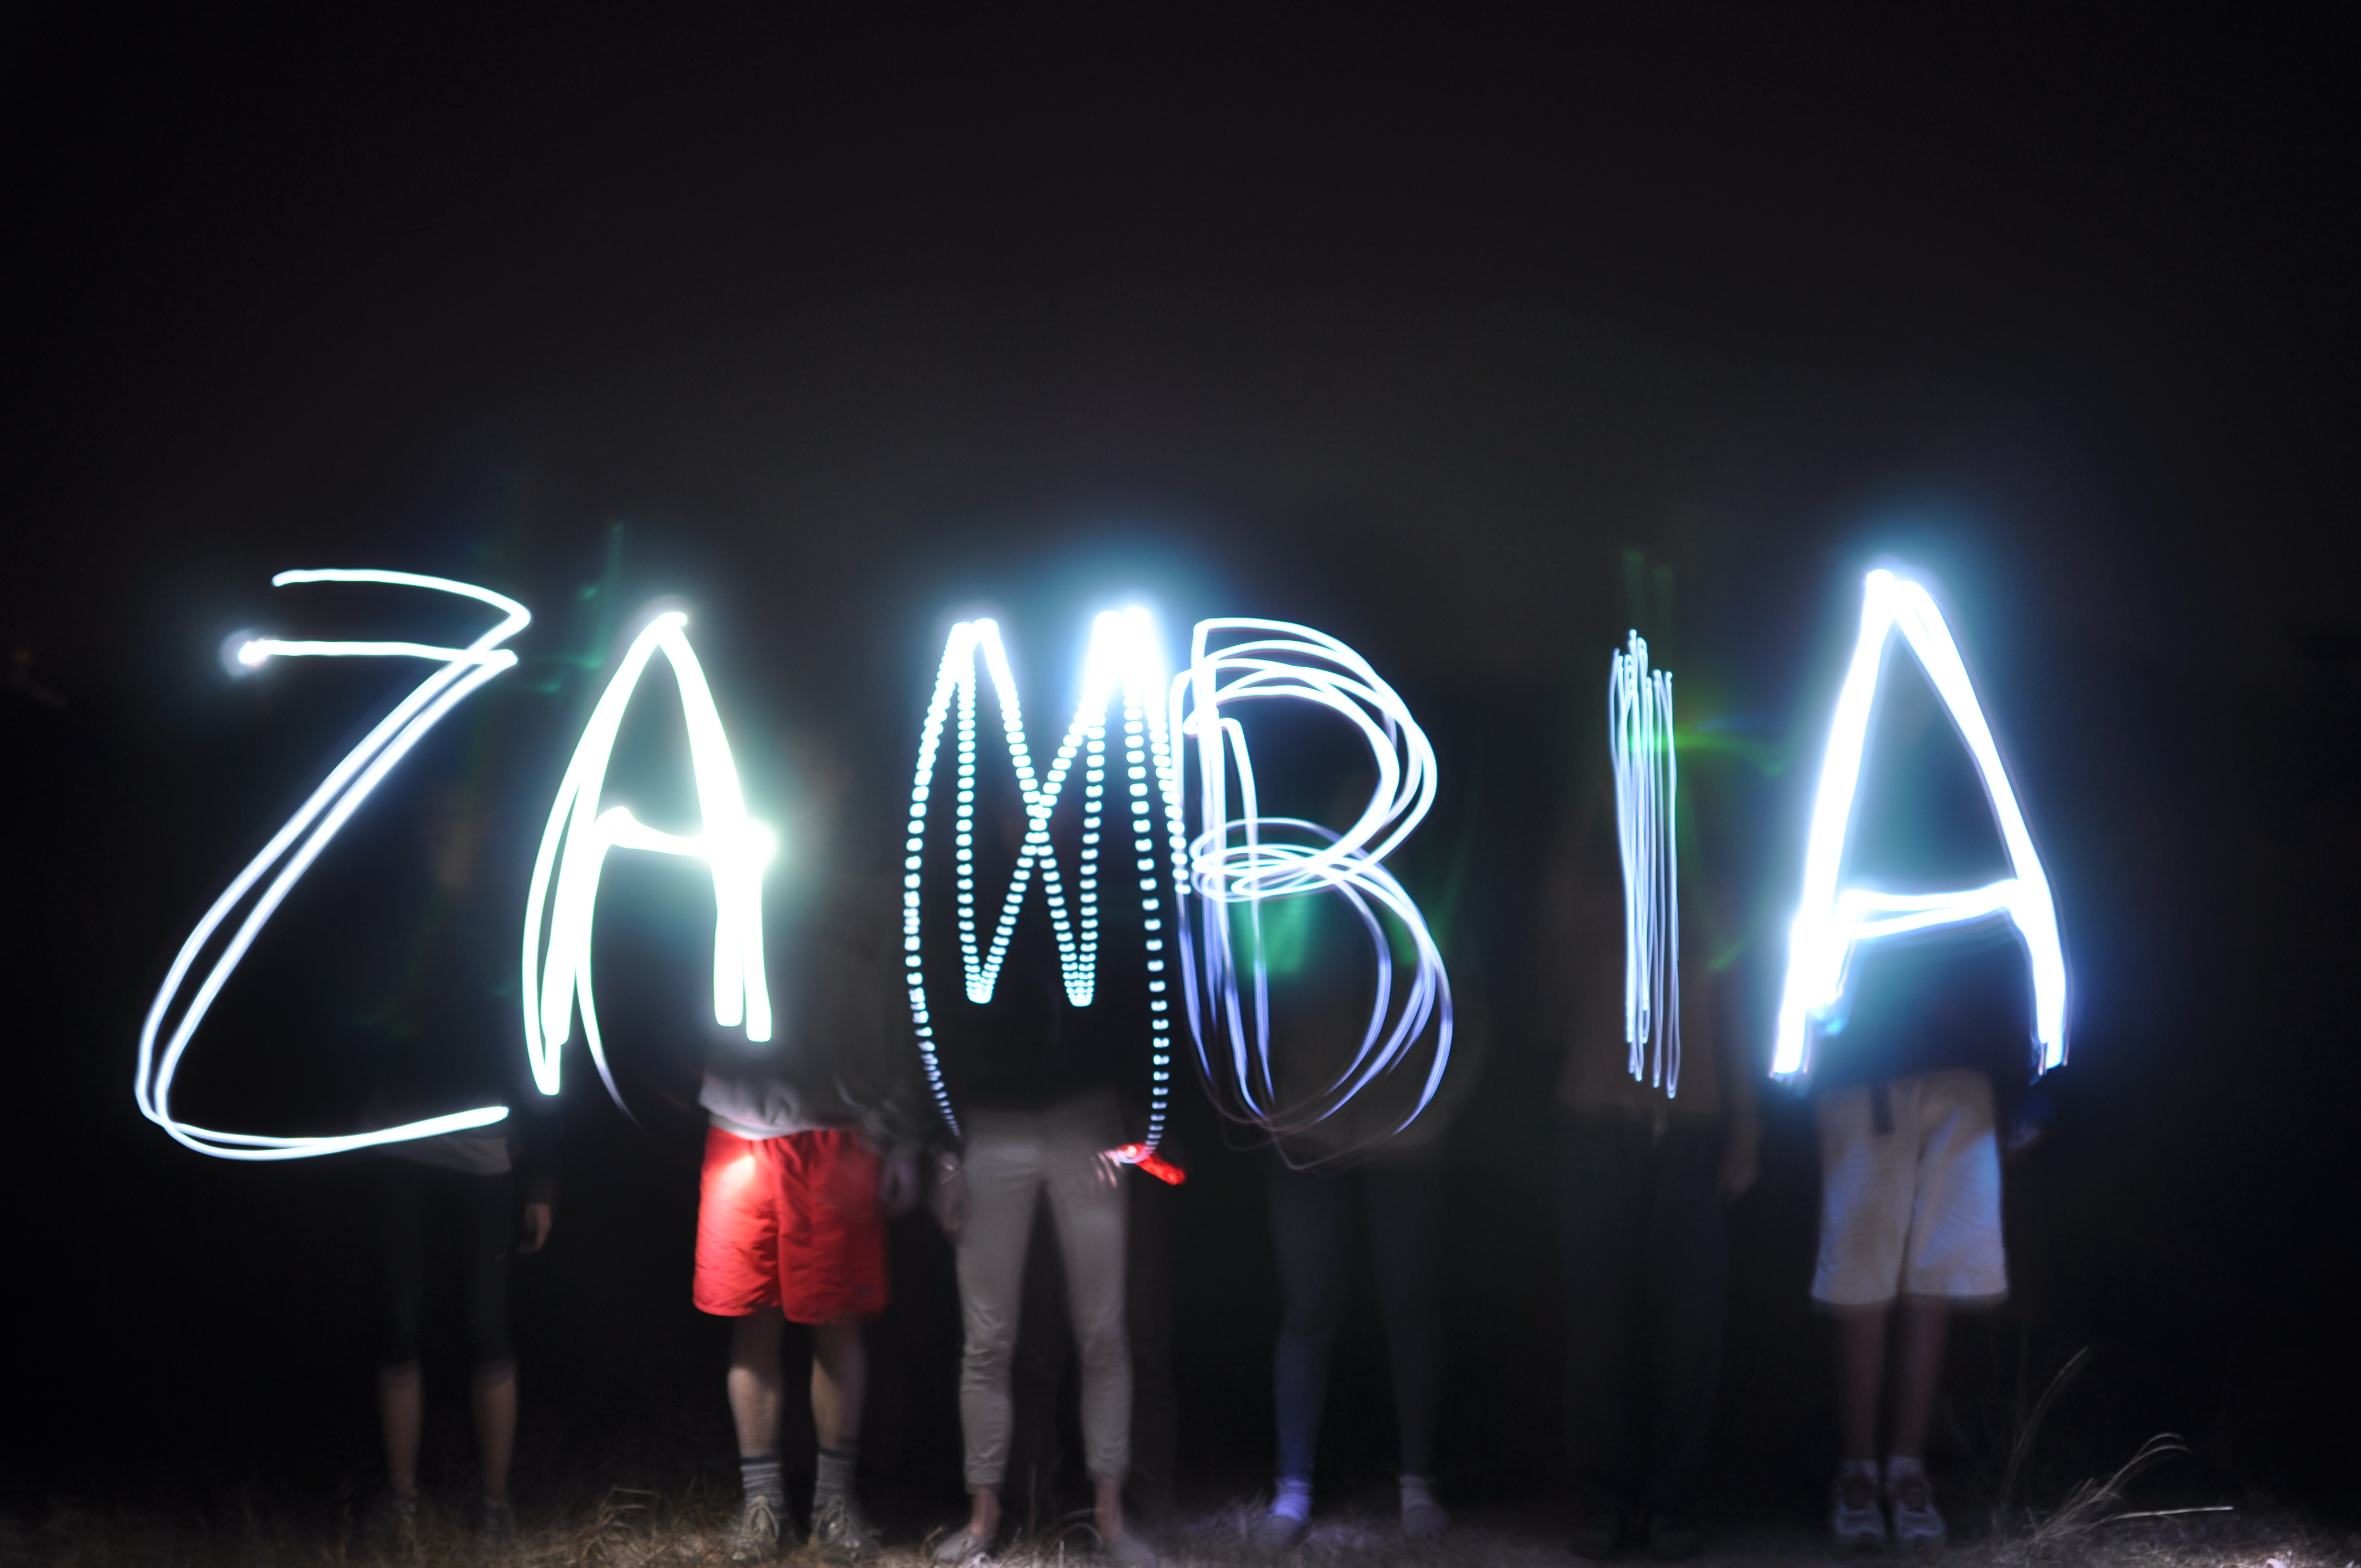 Zambia! (Photo courtesy Tommy Adams and SAAS-ZC.)